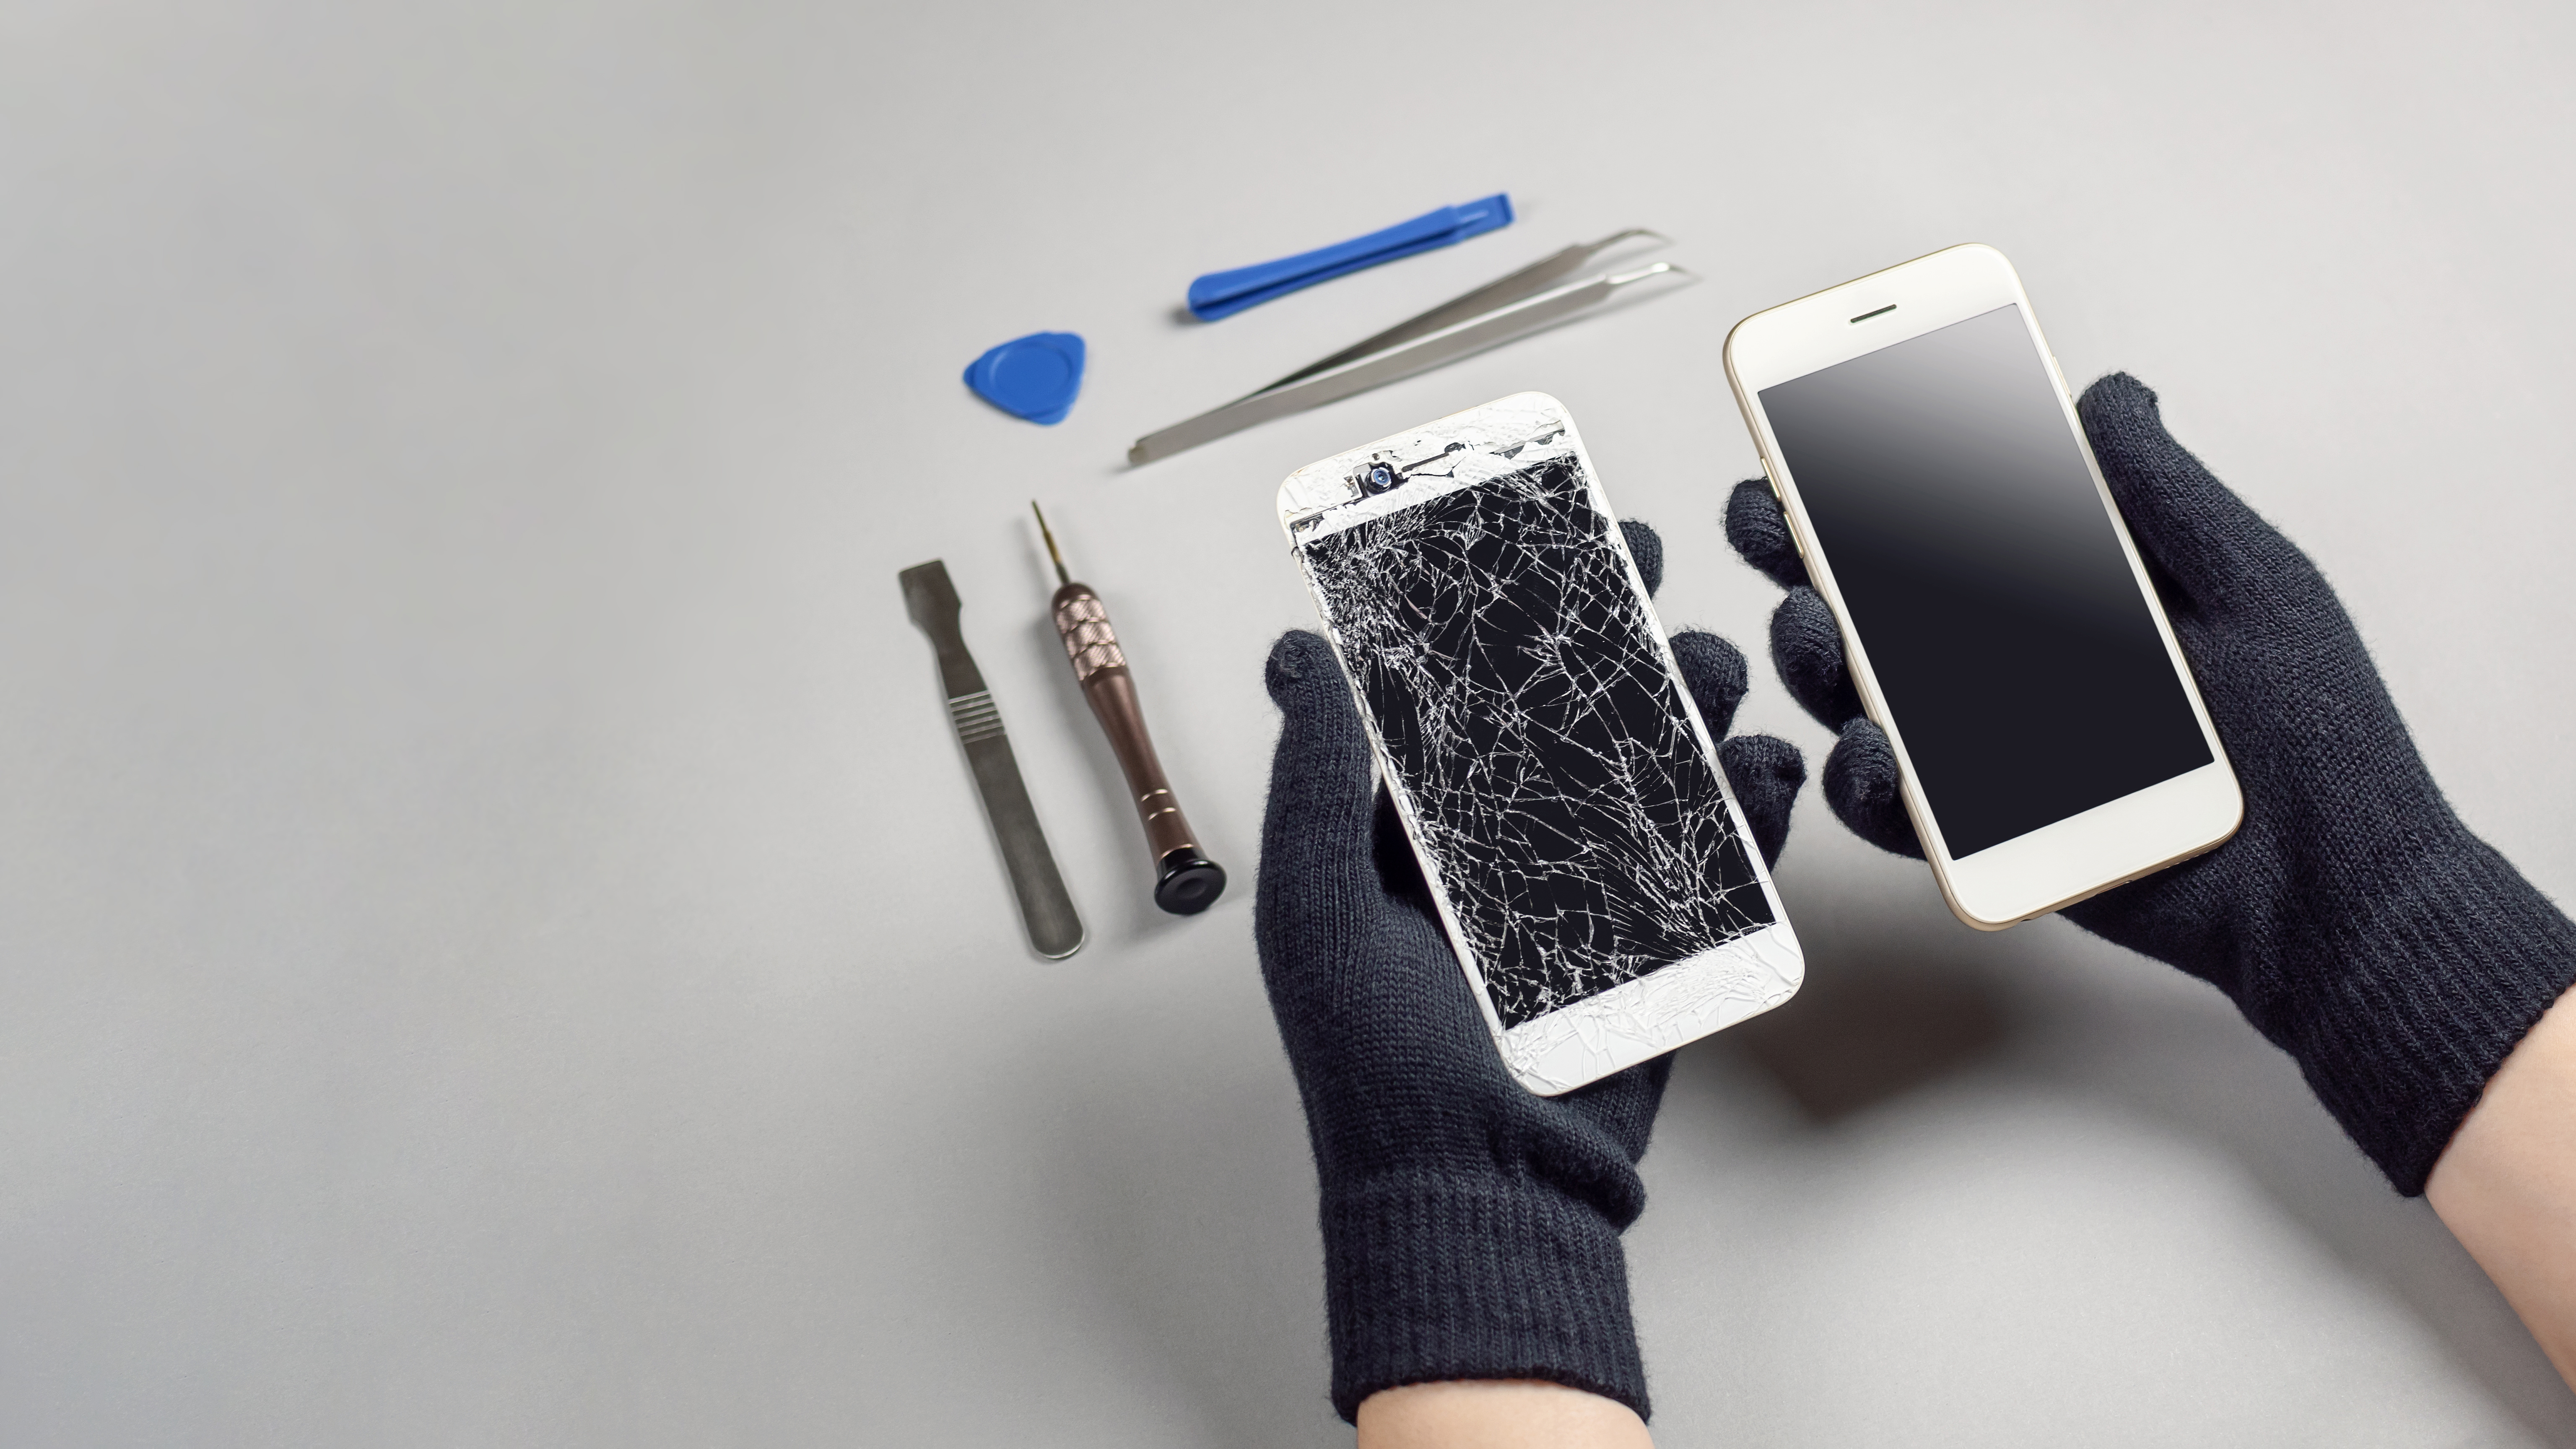 Technician preparing to repair and replace new screen broken and cracked screen smartphone repairing on desk.